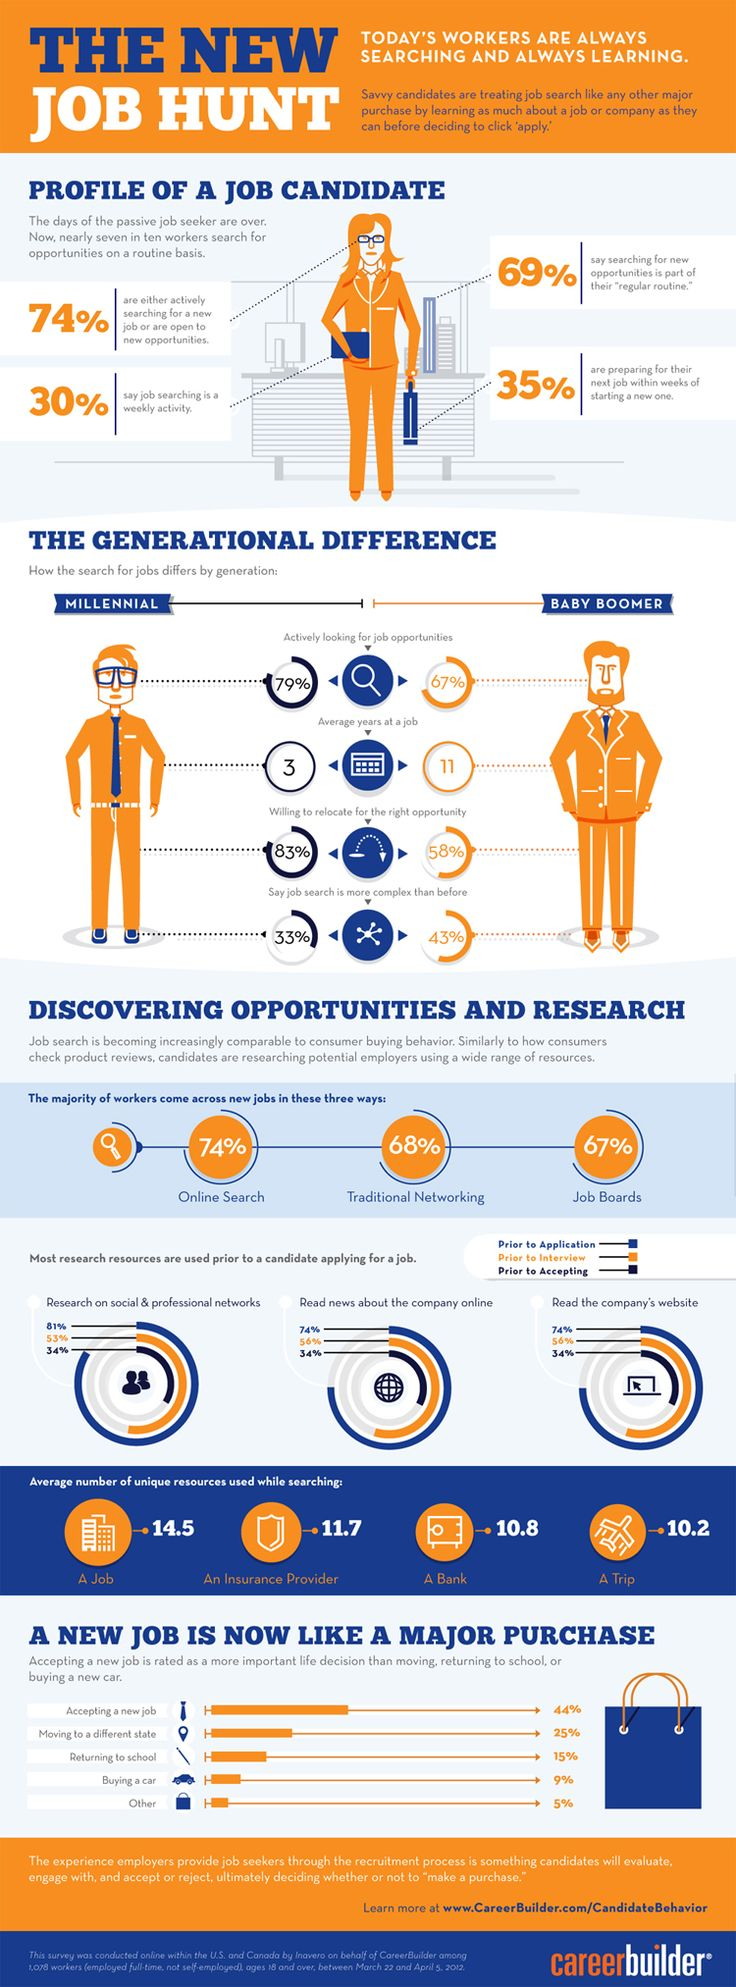 msn careers infographic the new job hunt career advice article